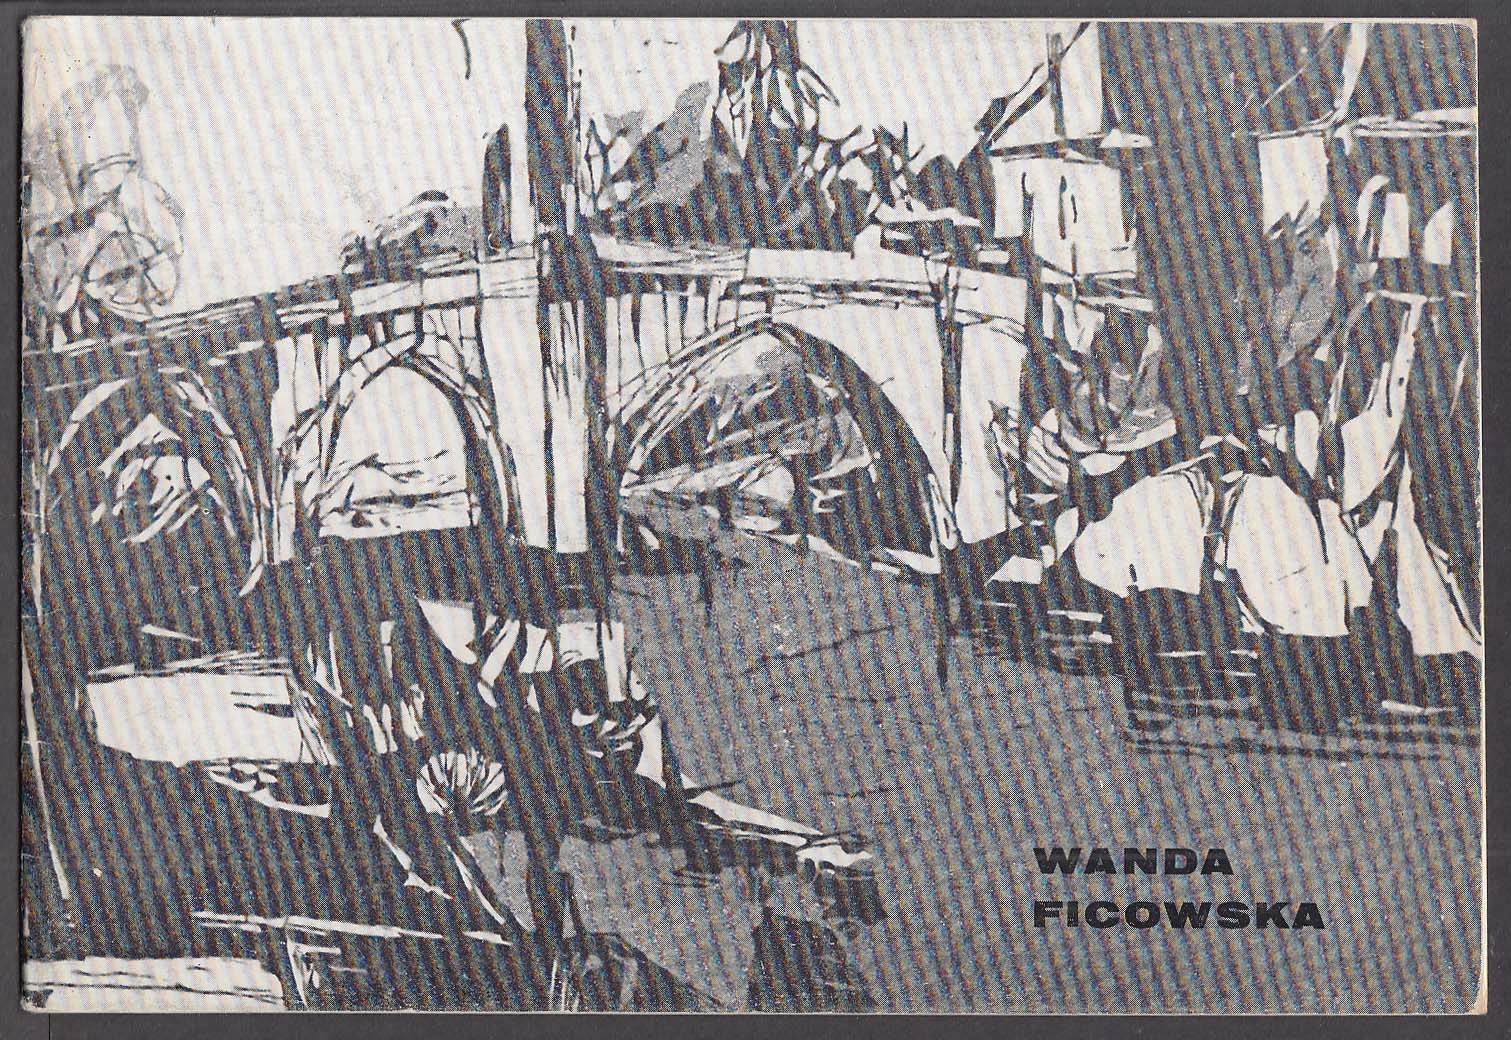 Wanda Ficowska Grafika 1964 exhibition catalog Warsaw